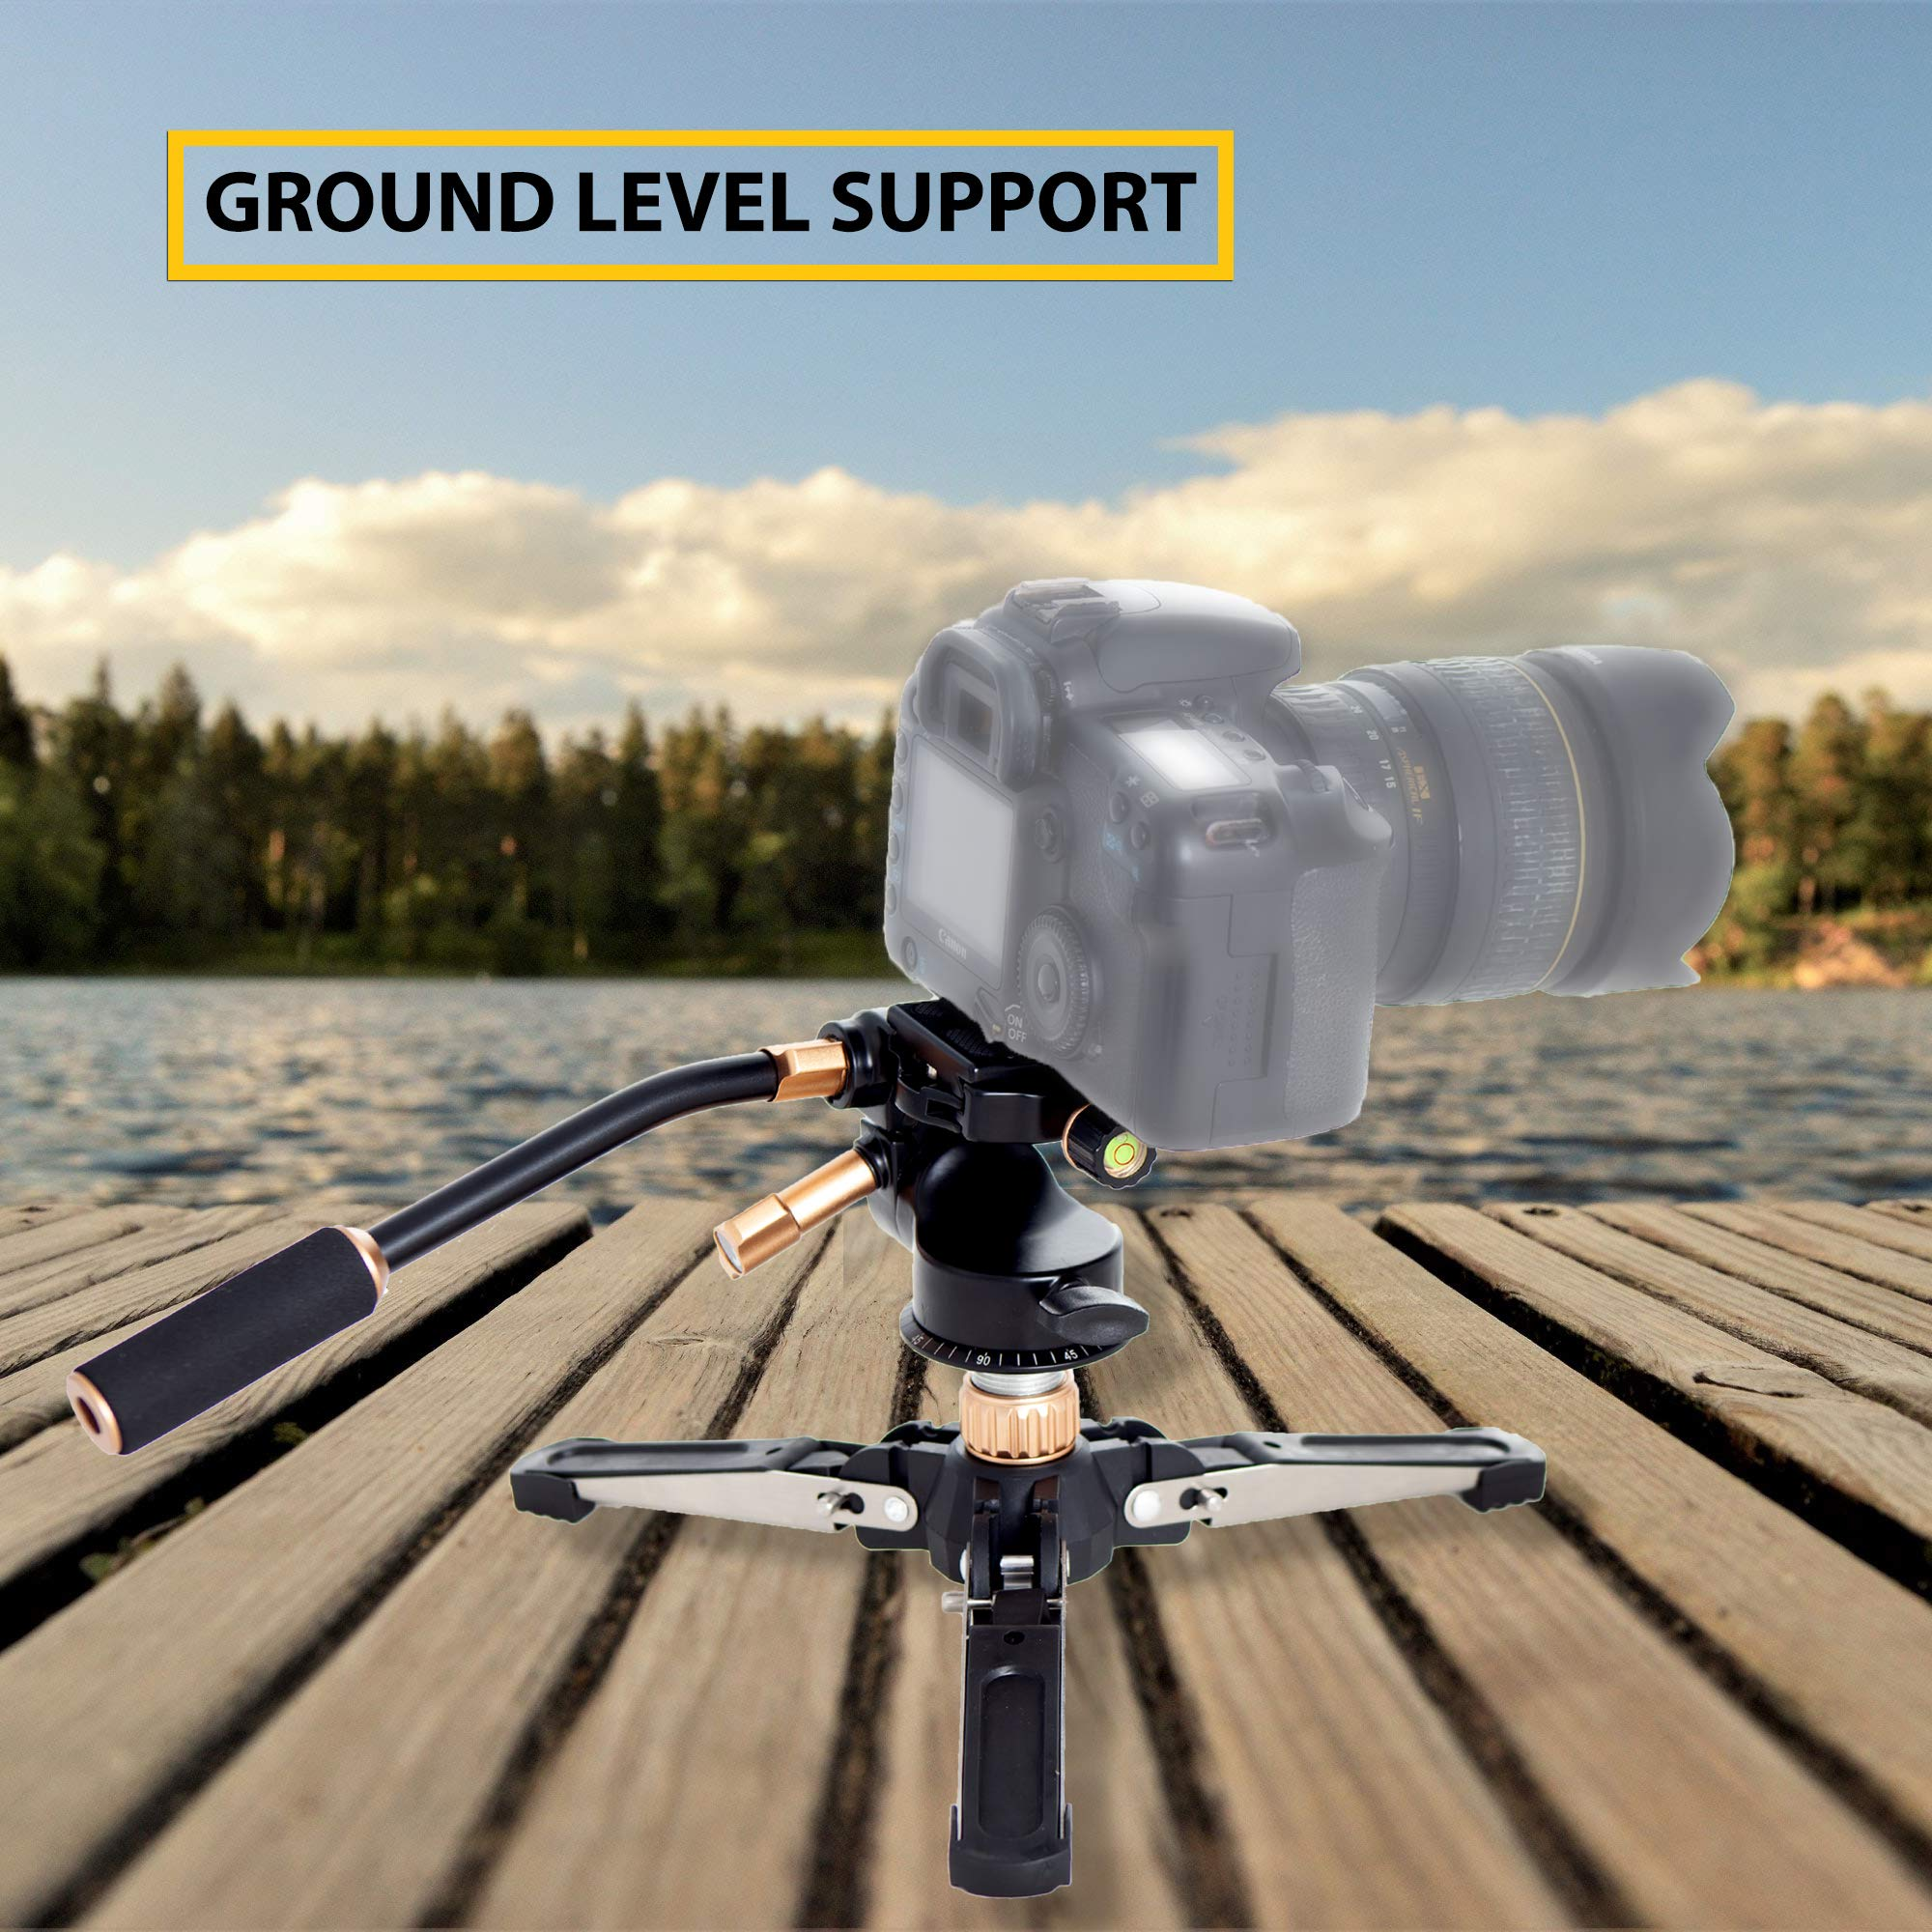 Professional Carbon Fiber Monopod Kit with Photo and Video 3-Way Head & Multi Direction Fluid Base for DSRL Cameras and Videocameras Pole Stick by Sensei Photo (Image #5)